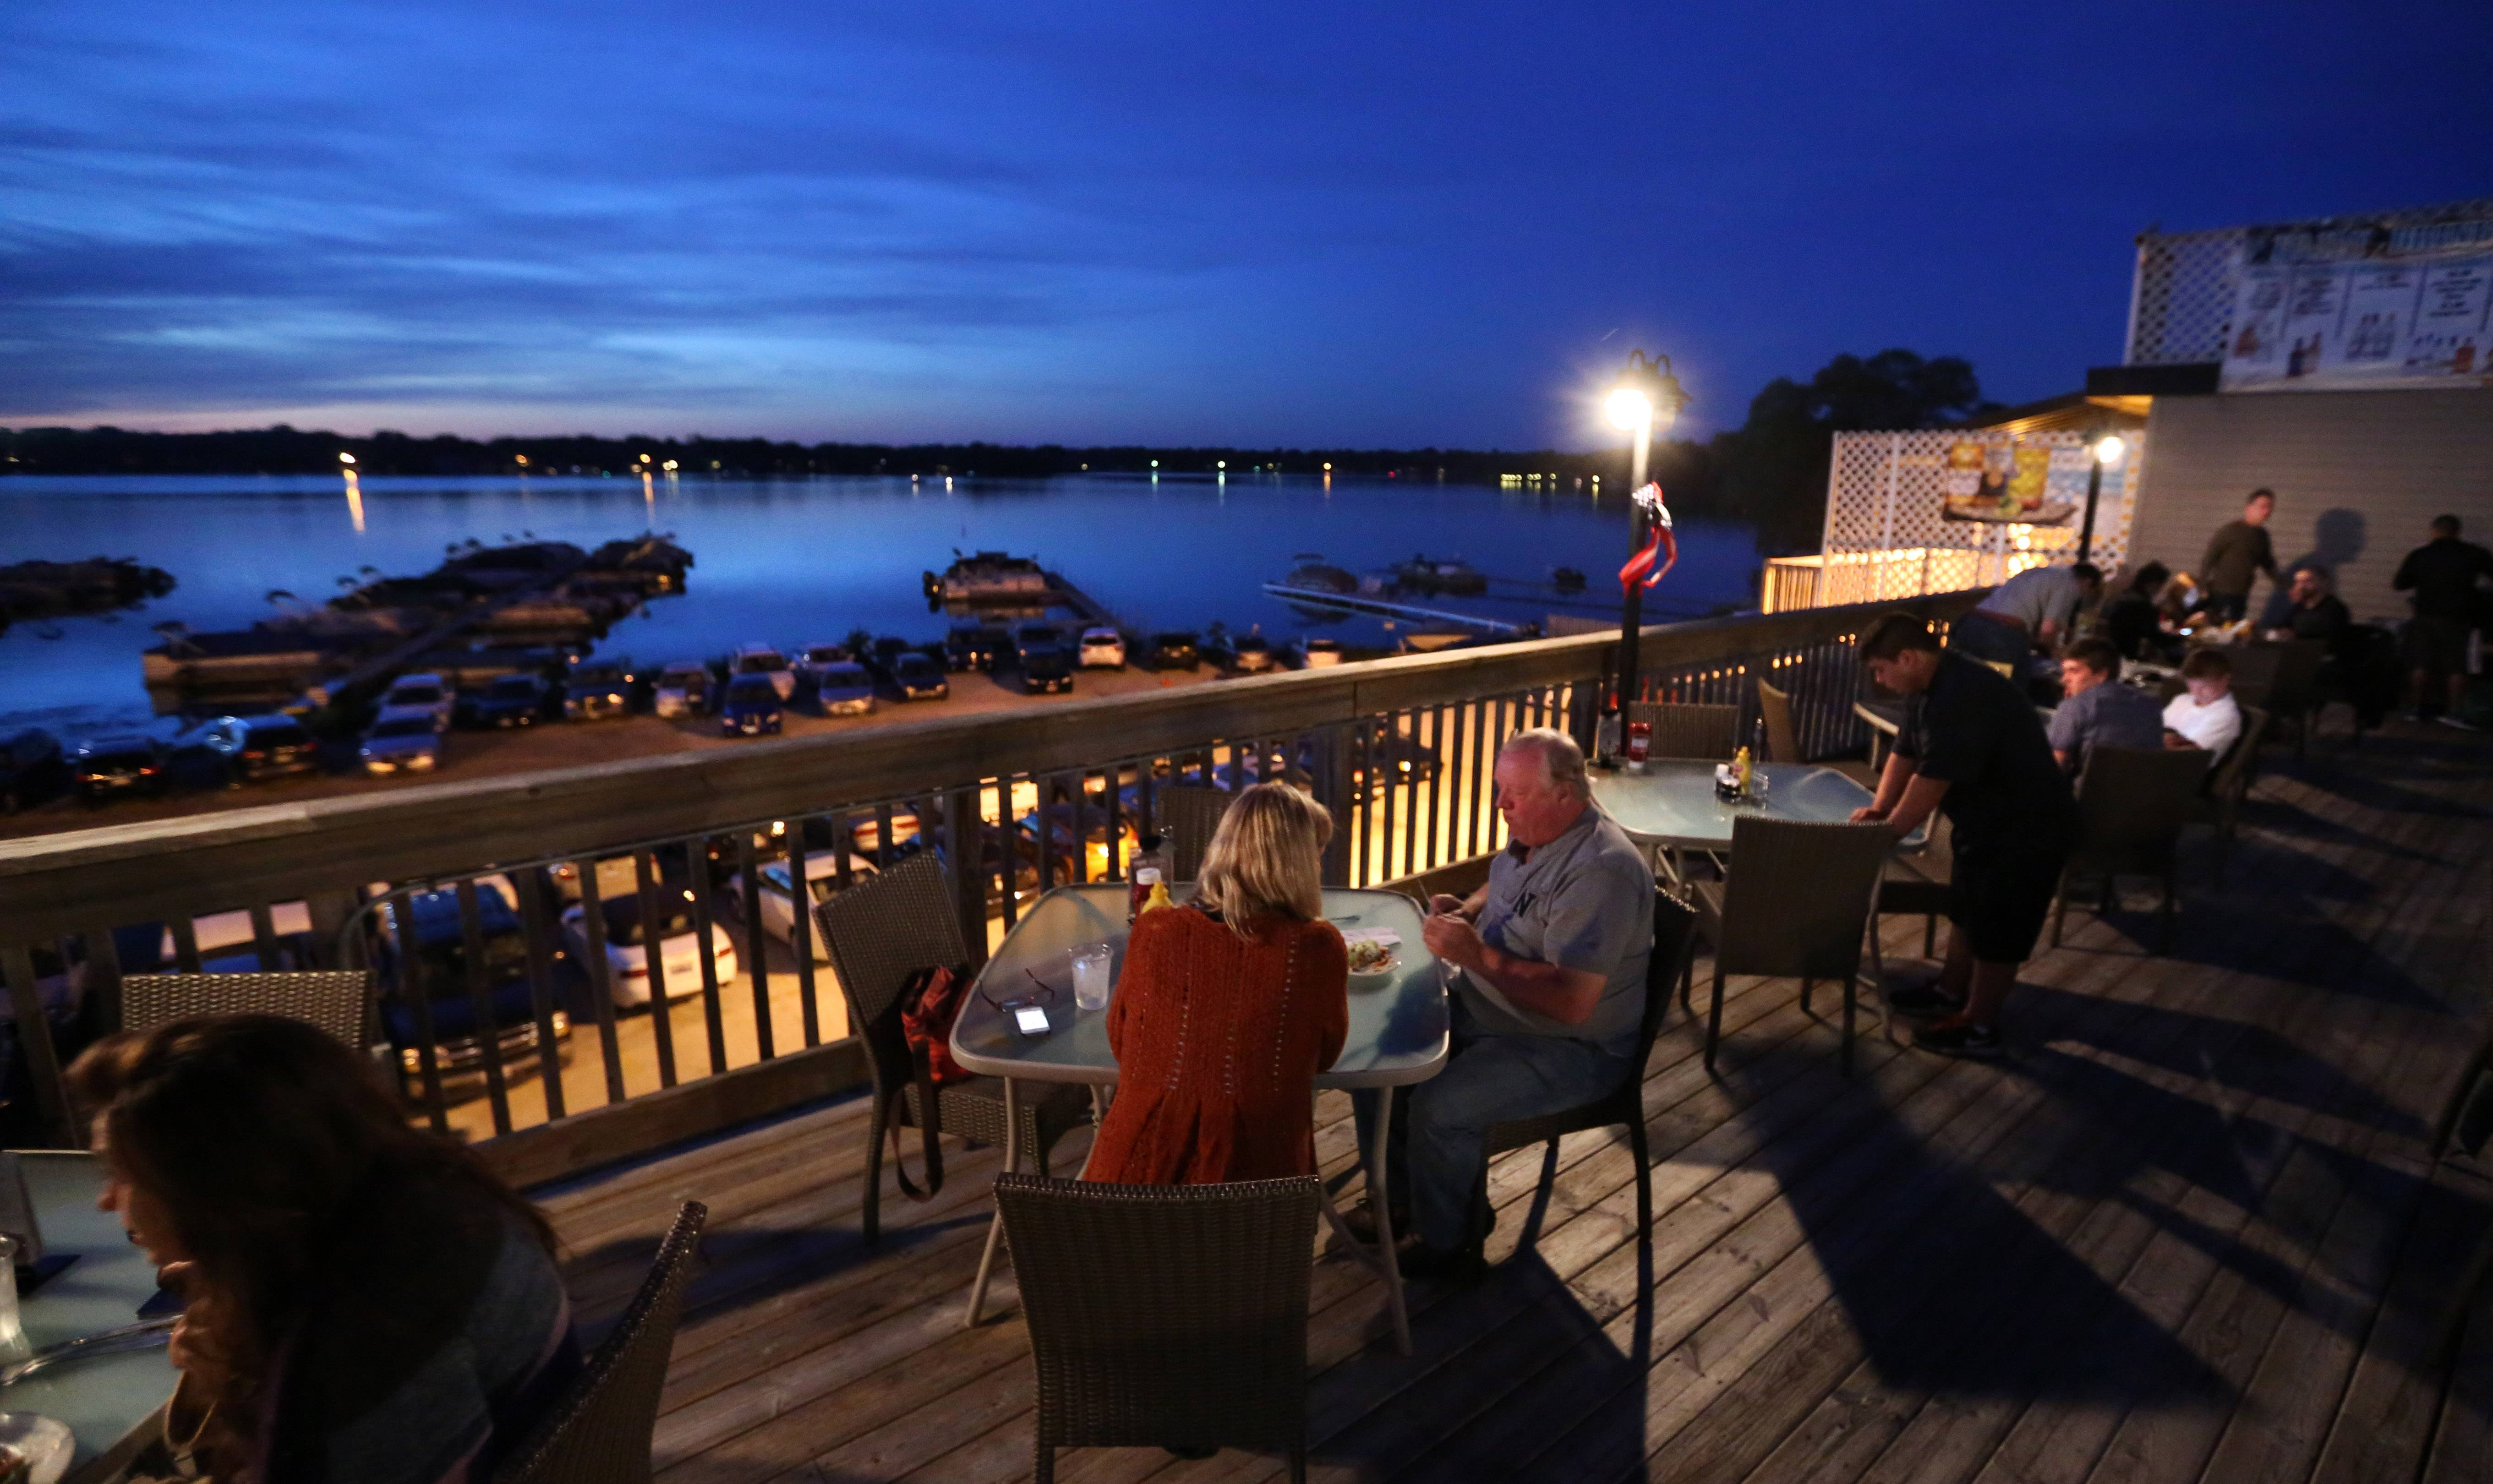 lake dock at night. the outdoor dining area overlooking bangs lake at docks bar and grill in wauconda. dock night .